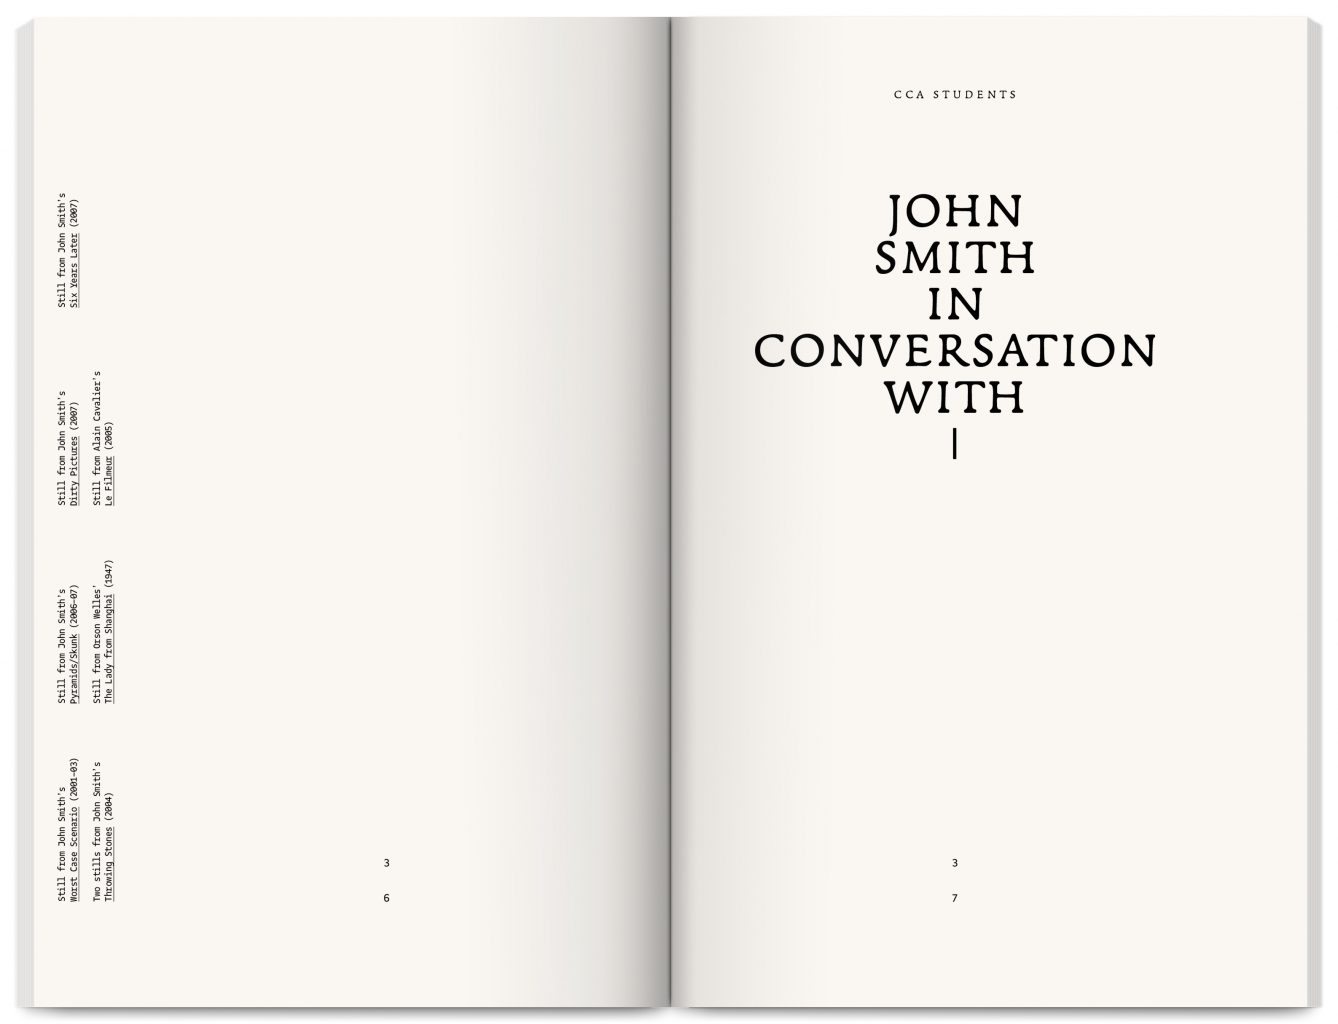 John Smith | Solo Show, catalogue published by the Curating Contemporary Art Department of the Royal College of Art, designed by In the shade of a tree studio (founded by Sophie Demay and Maël Fournier Comte) together with Samuel Bonnet.